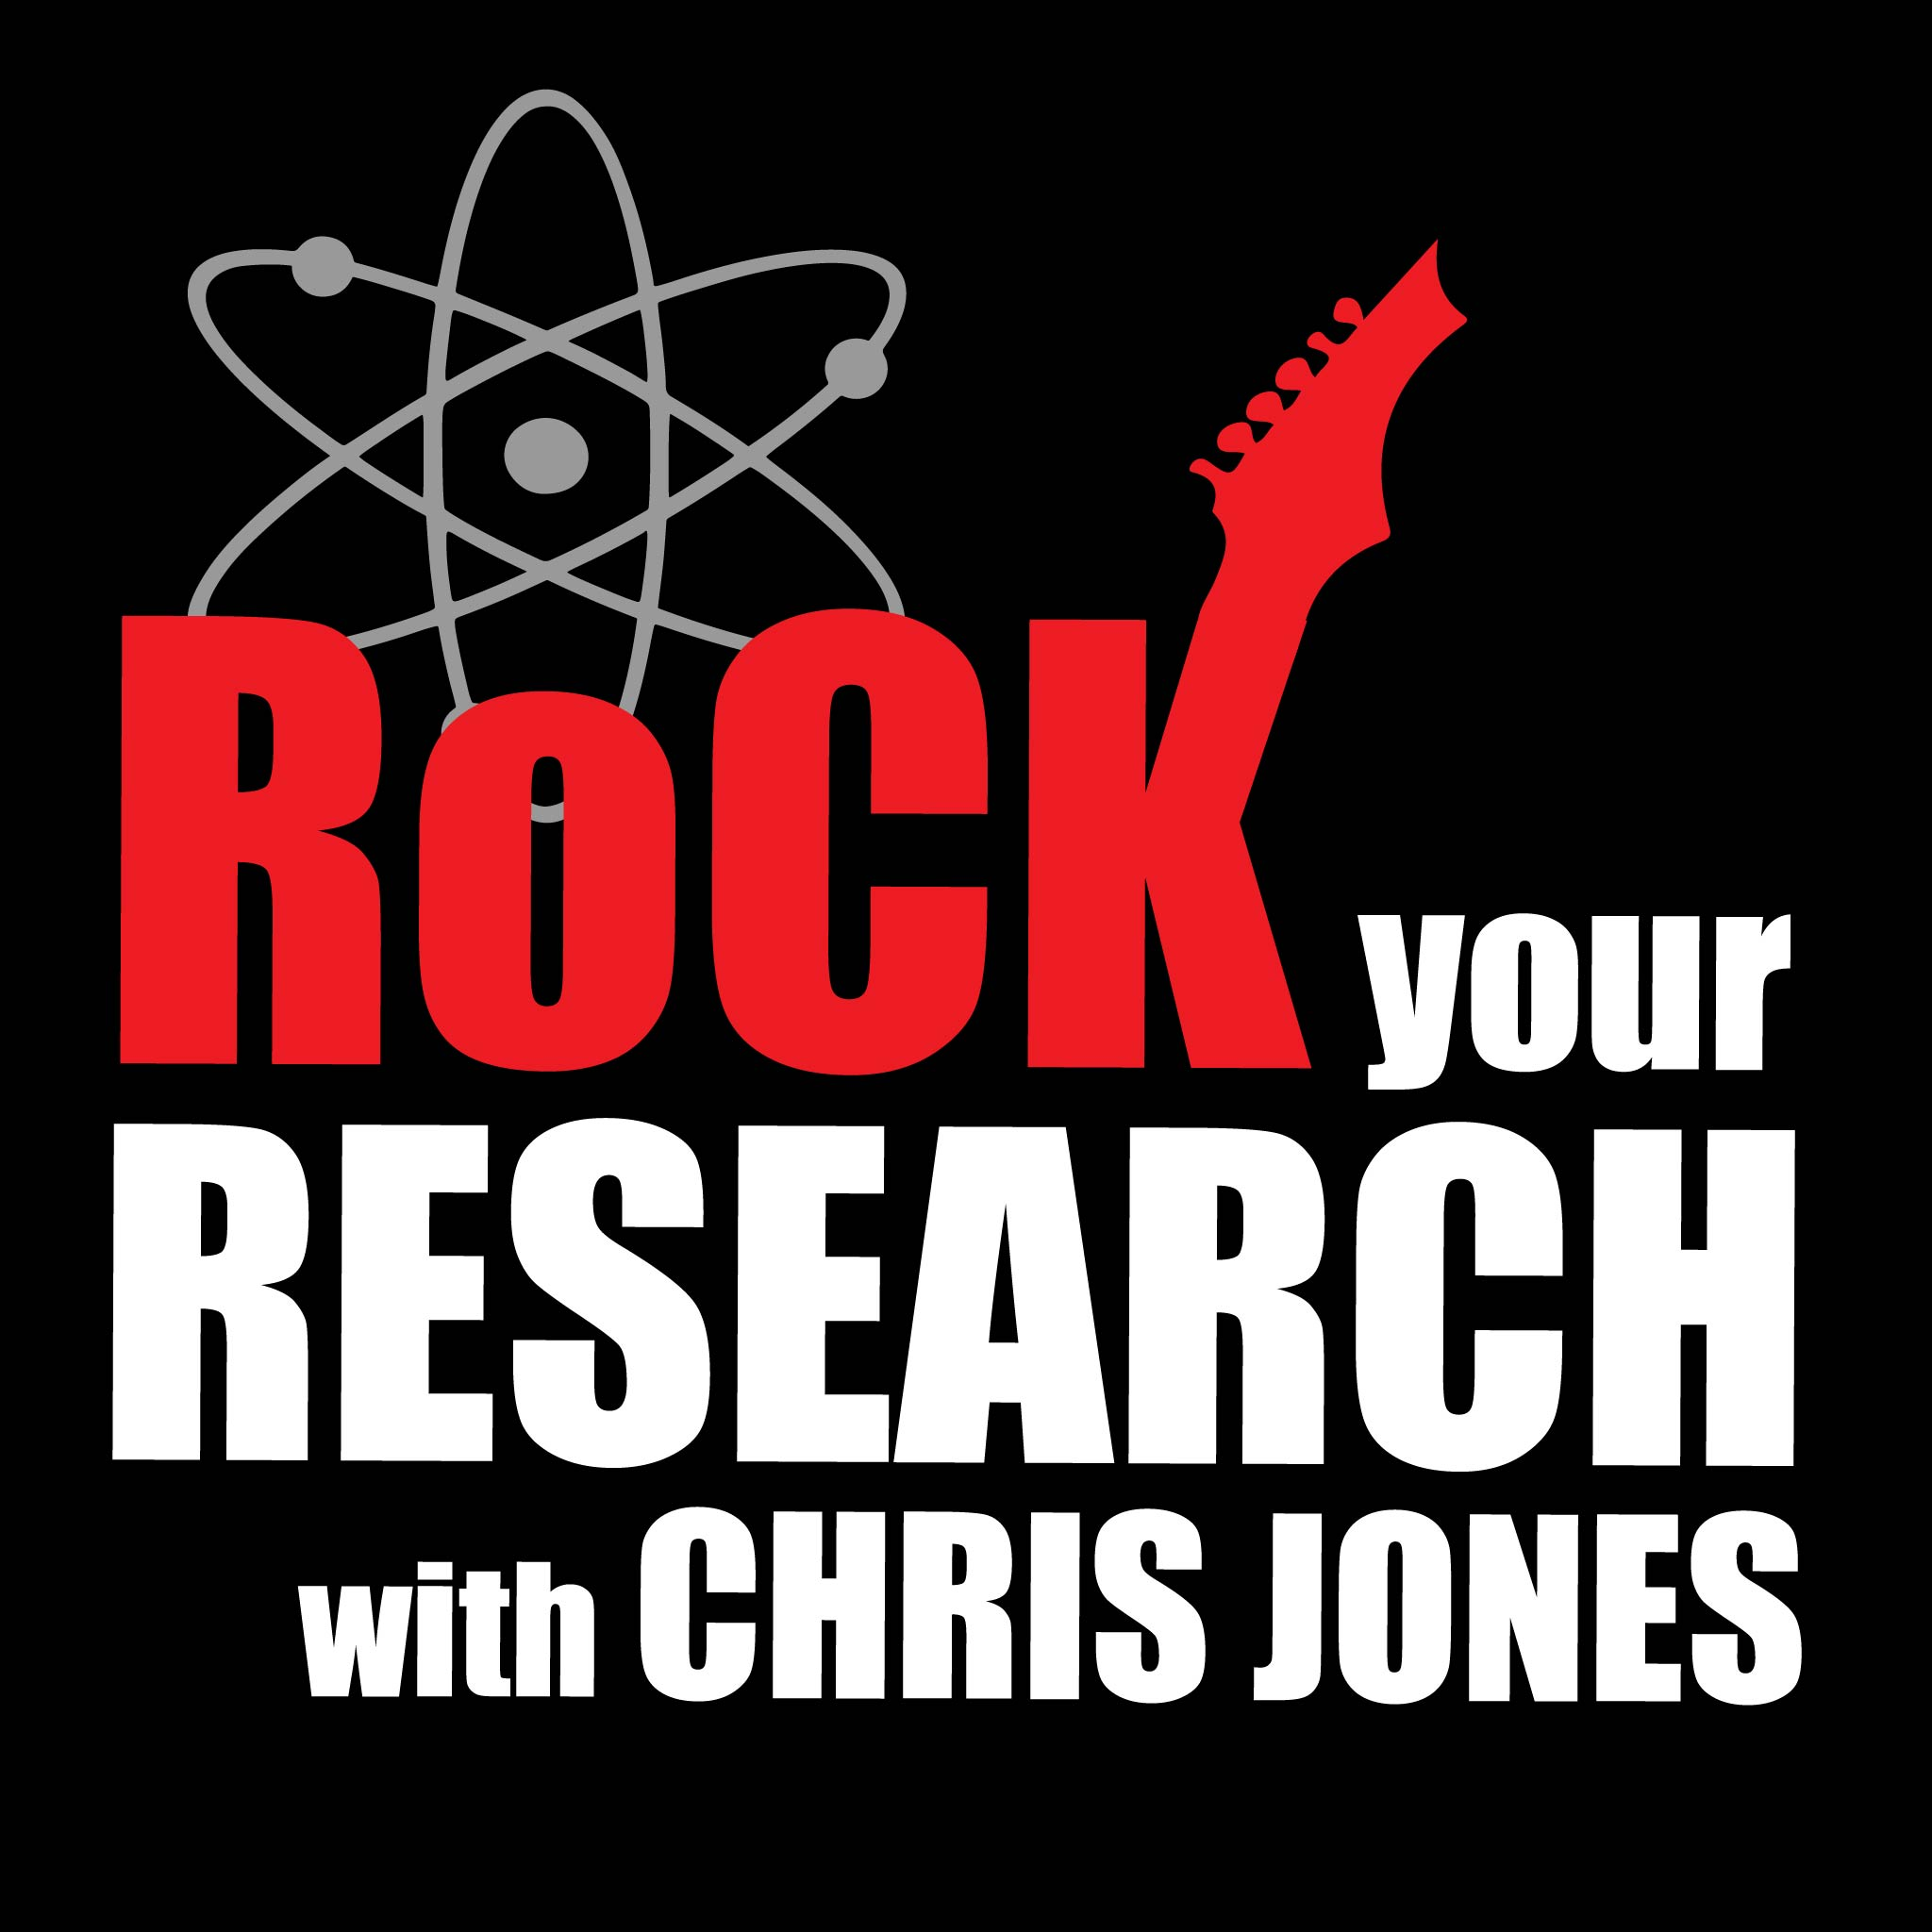 Rock Your Research with Chris Jones